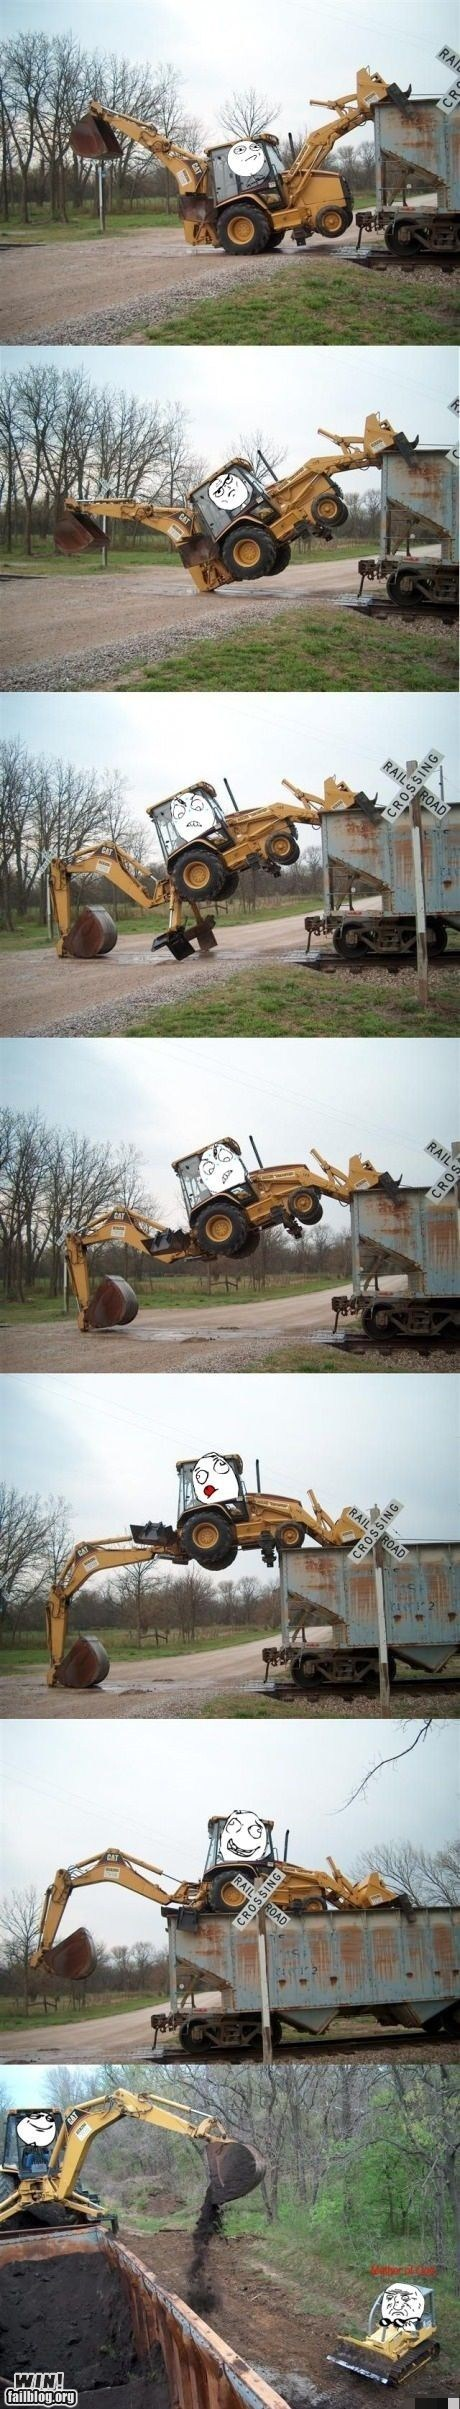 climbing construction equipment Like a Boss rage faces - 6412377600